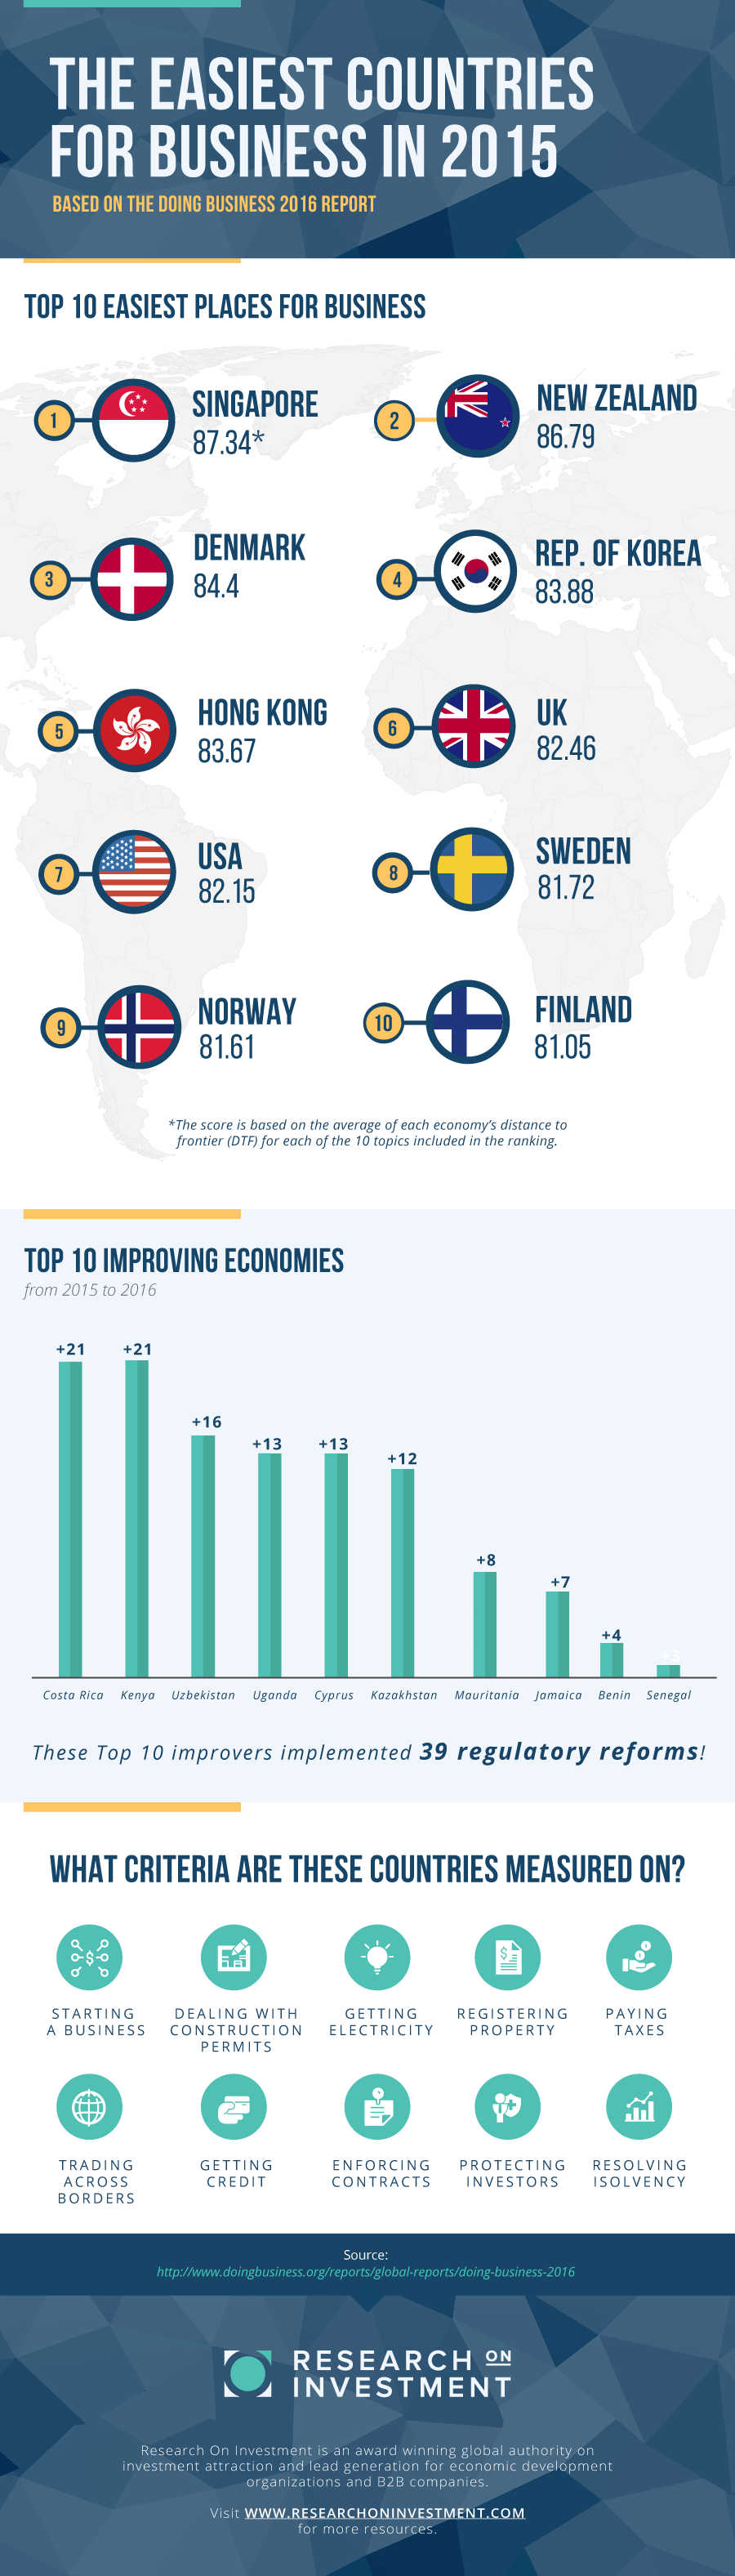 THE EASIEST COUNTRIES FOR BUSINESS IN 2016 Infographic